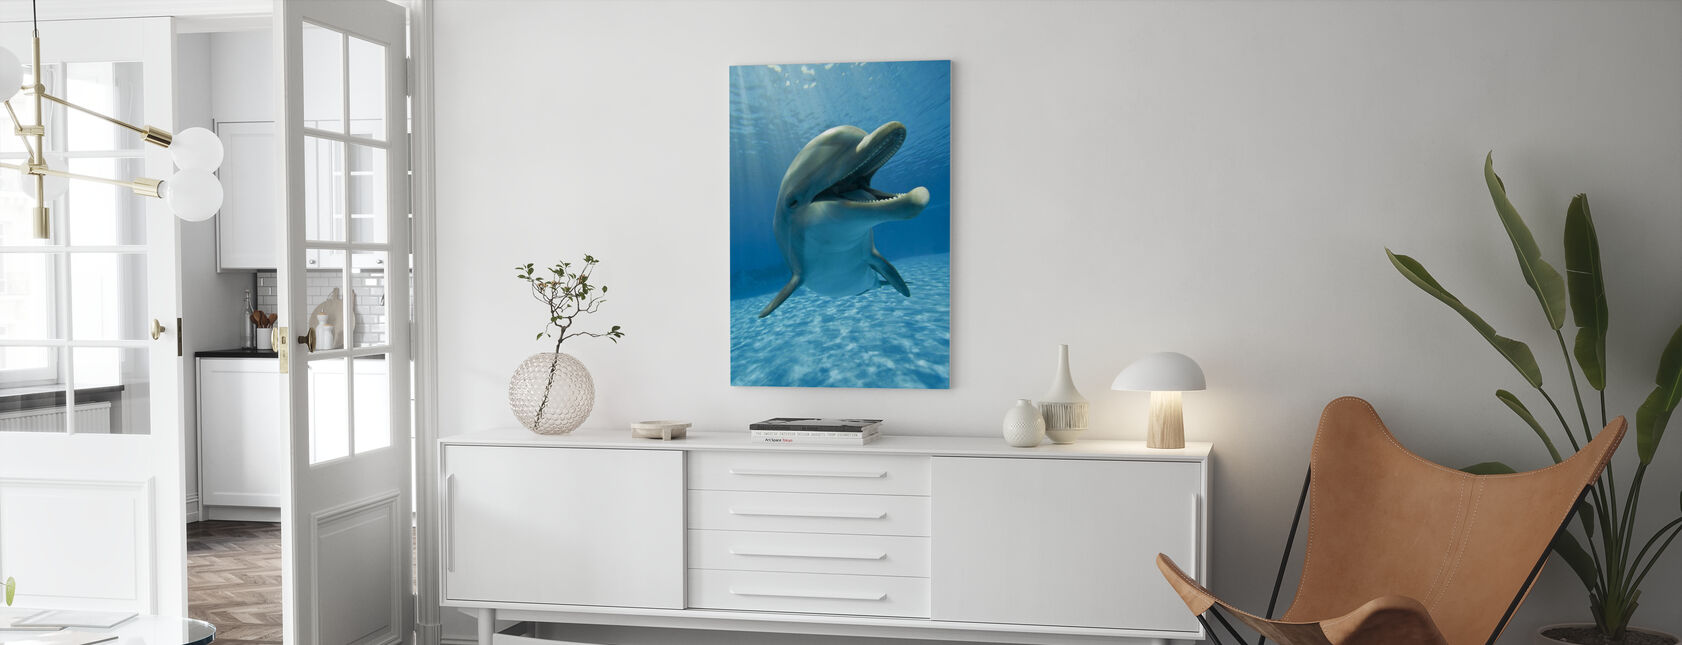 Encounter with Dolphin - Canvas print - Living Room